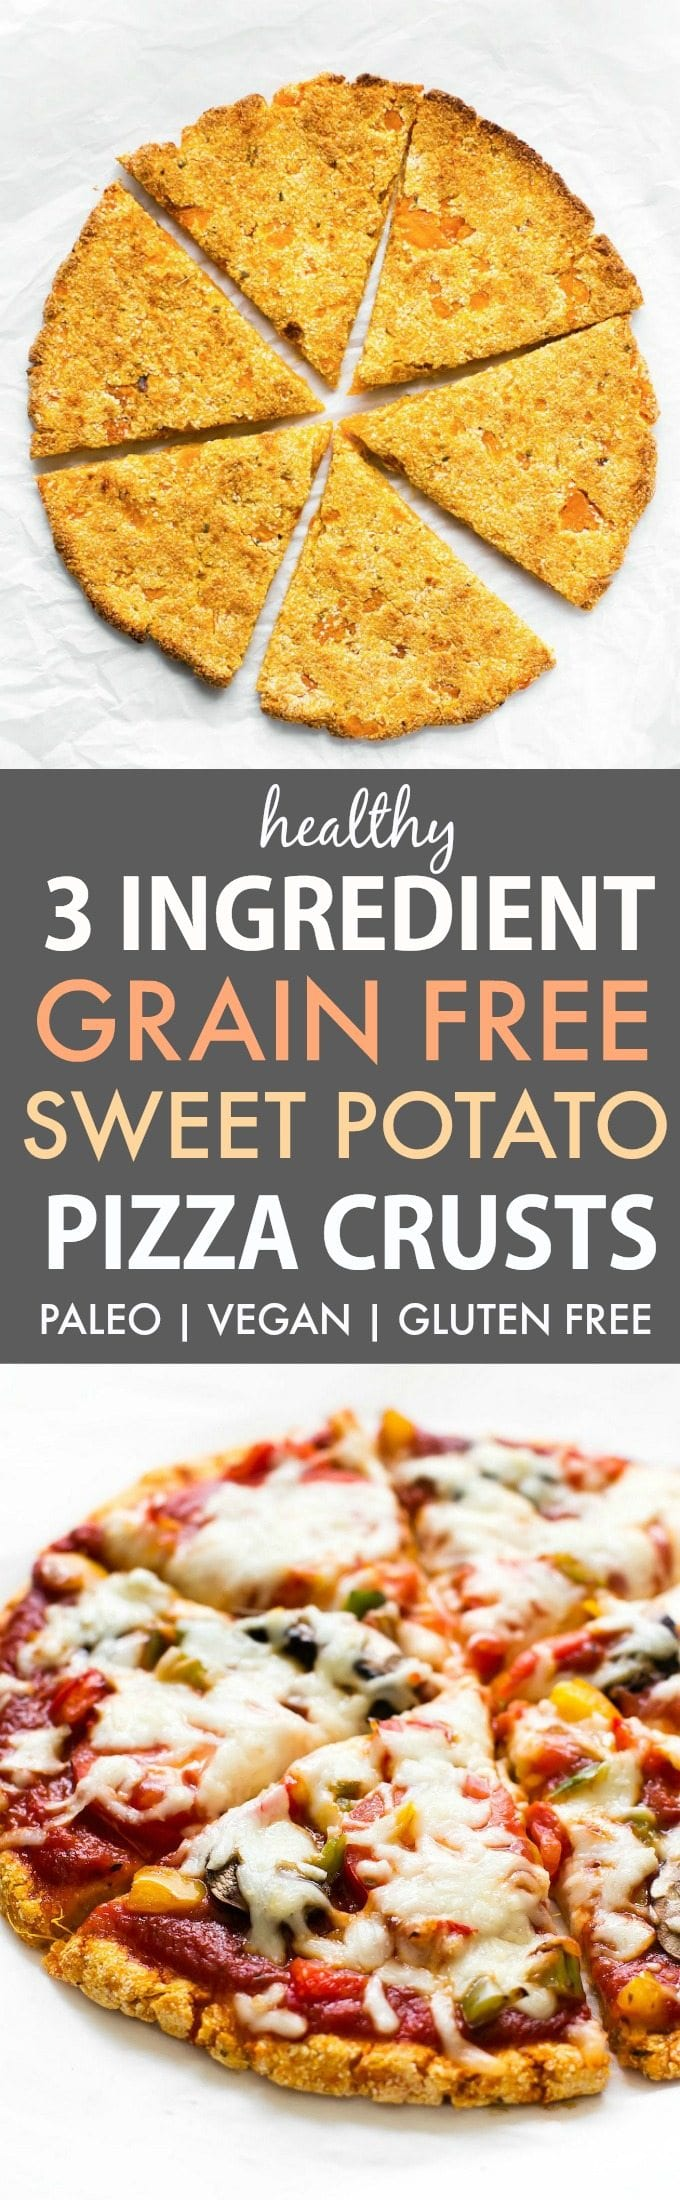 sweet potato crust